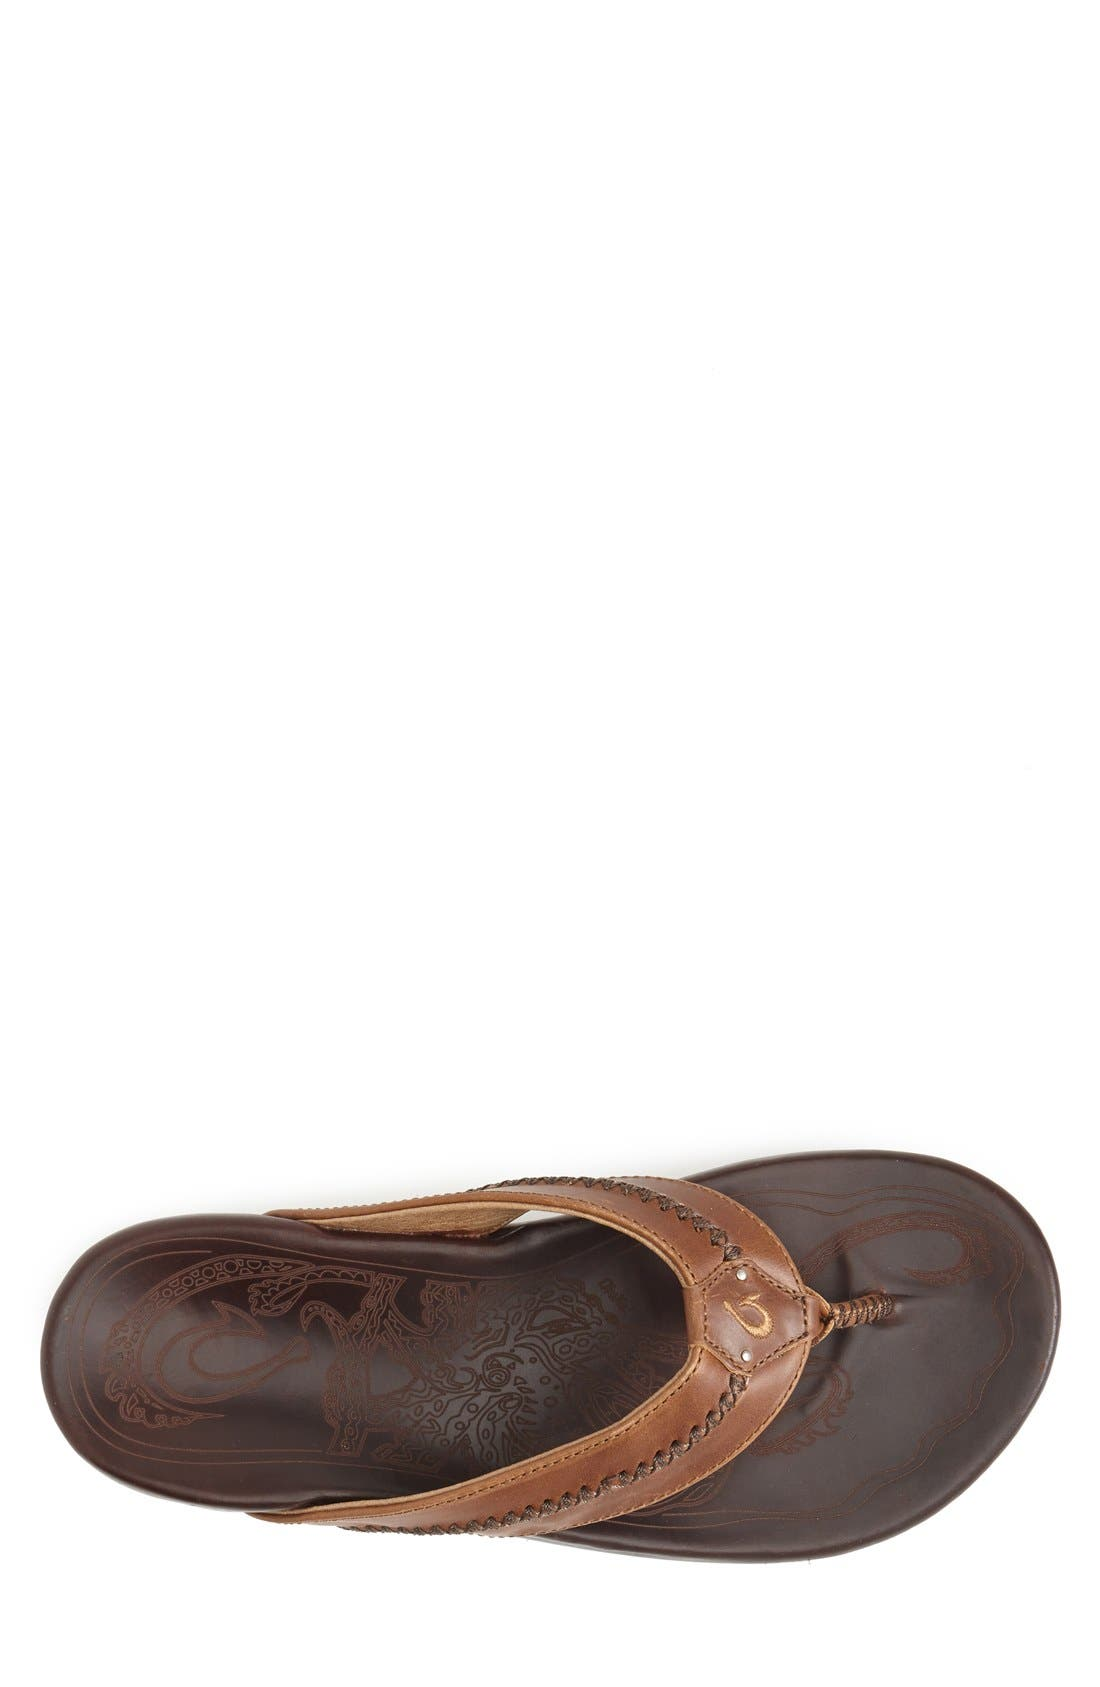 Alternate Image 3  - OluKai 'Mea Ola' Flip Flop (Men)